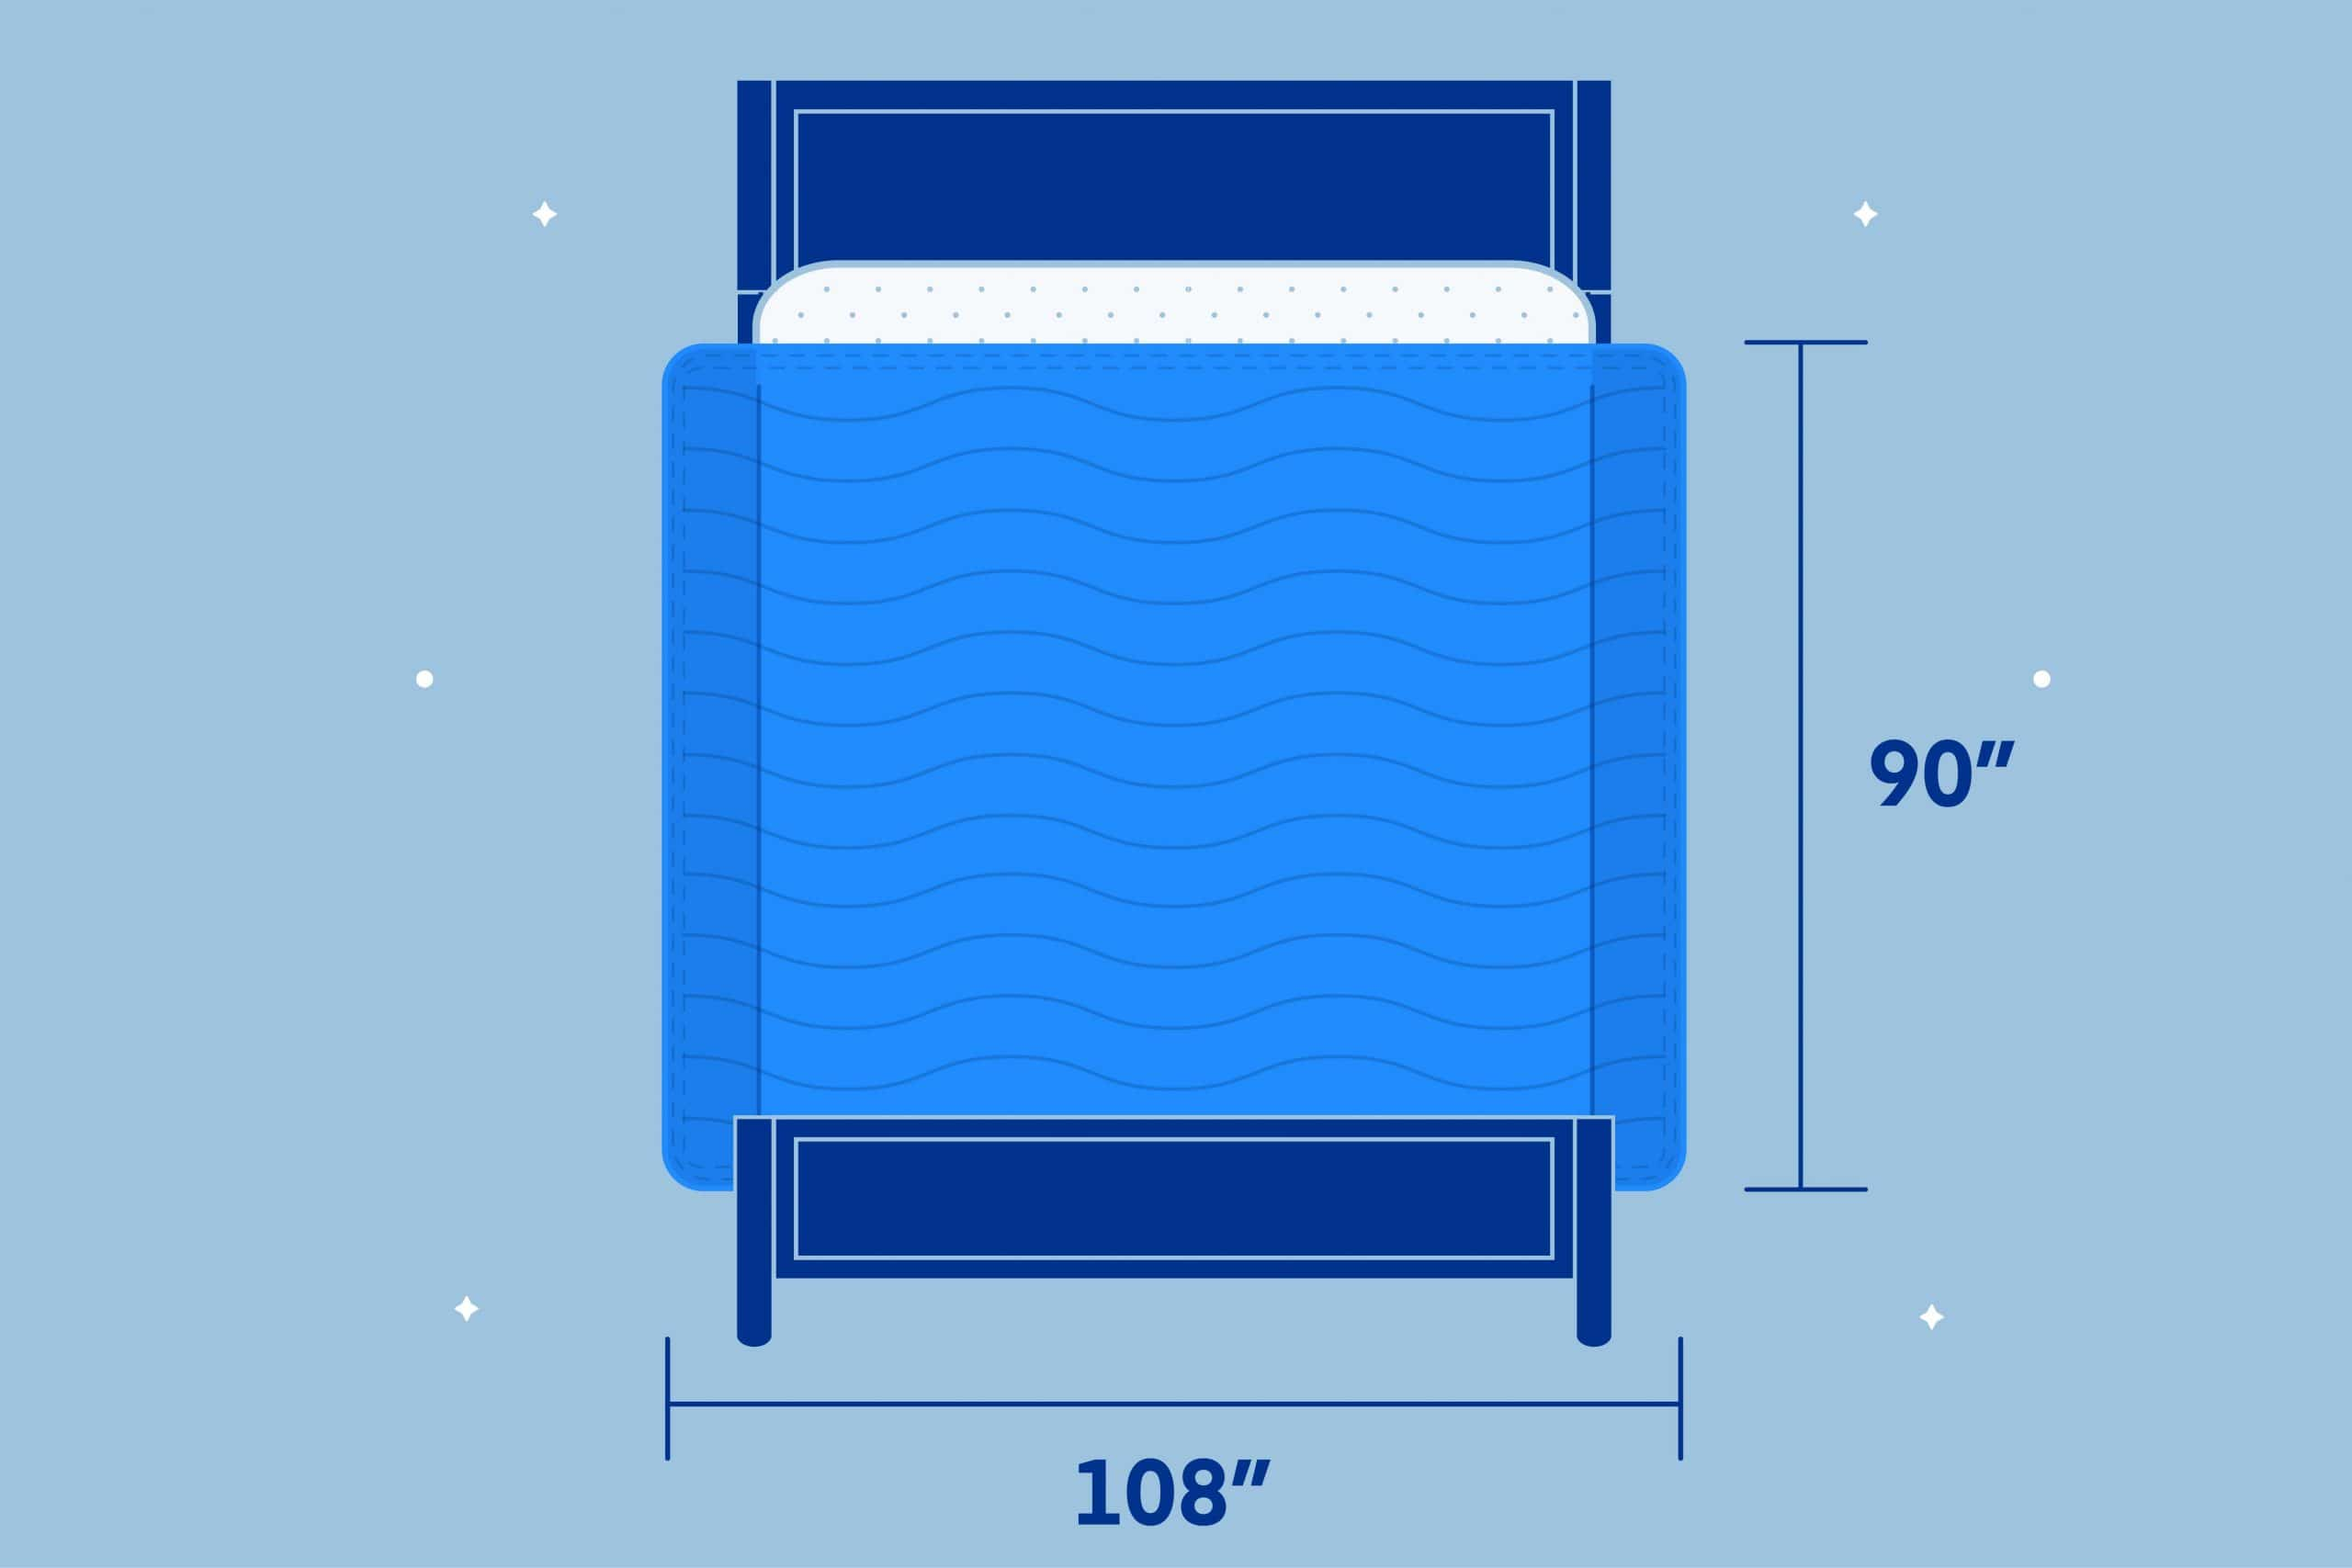 Blanket Sizes and Dimensions Guide